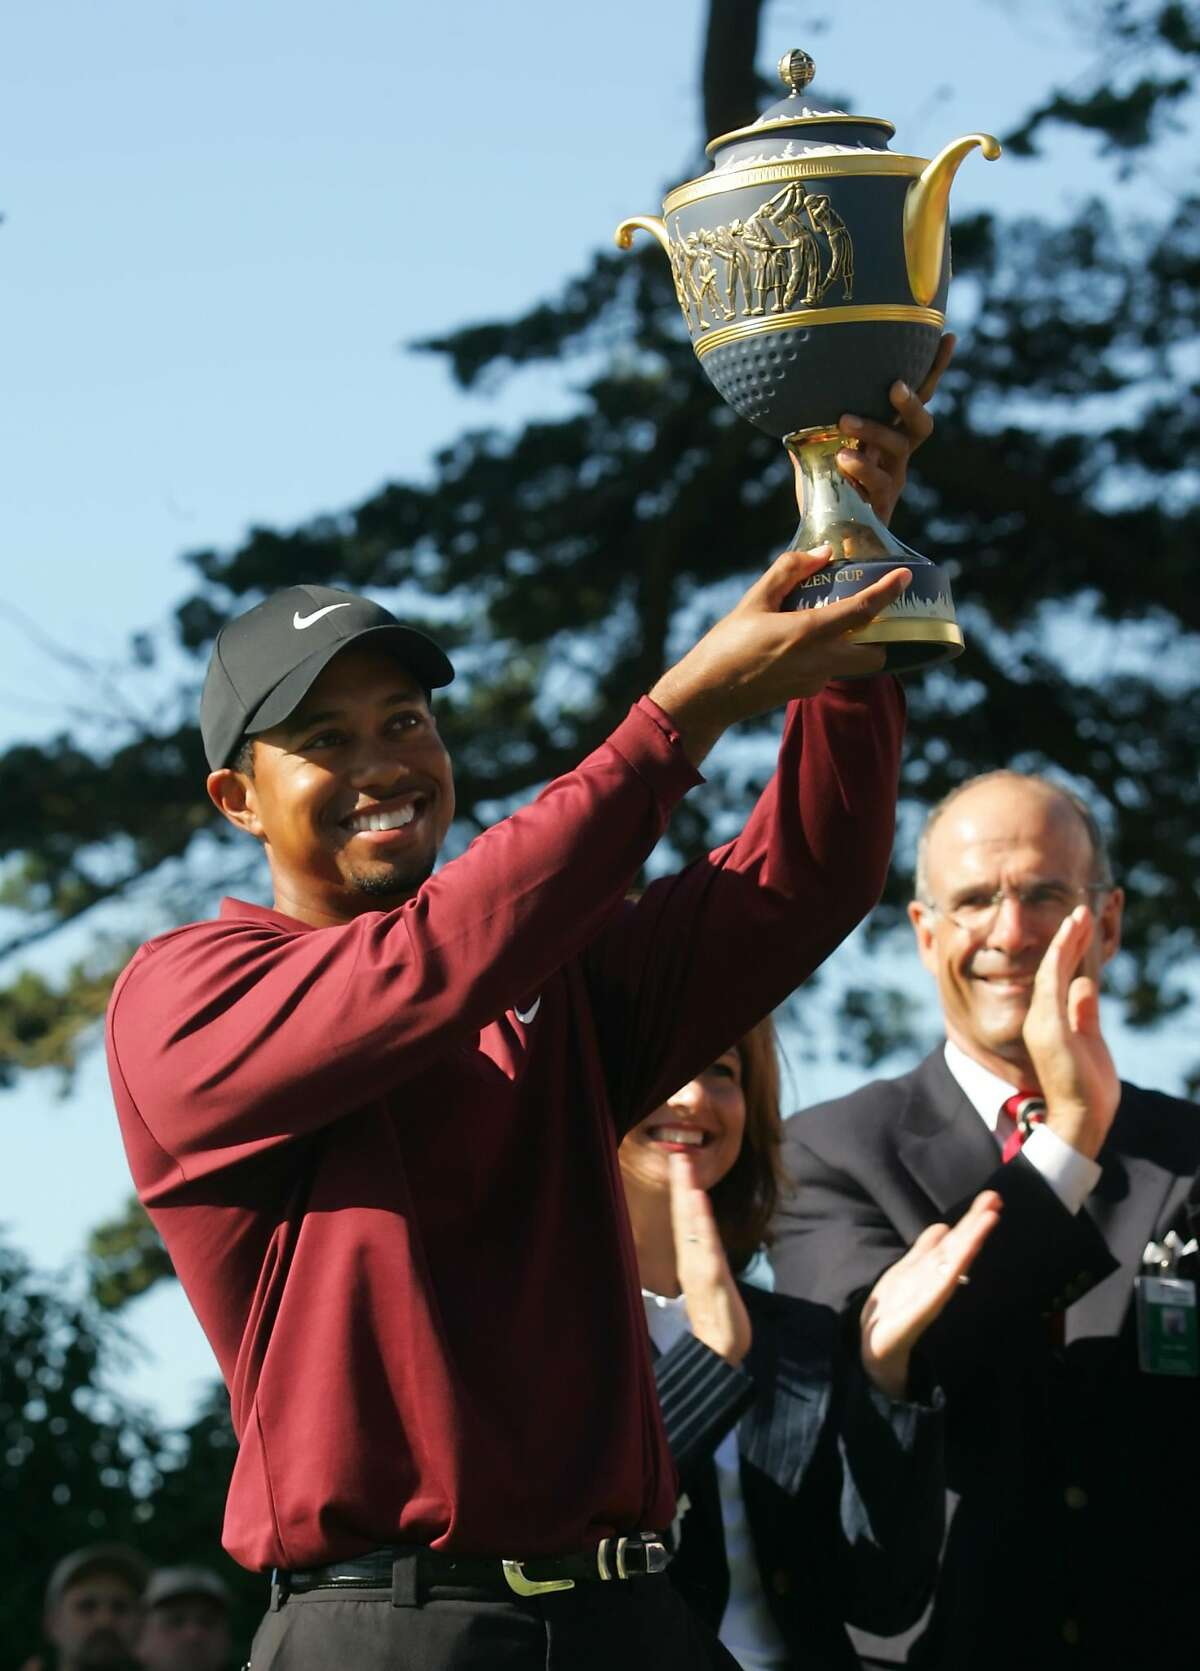 Tiger Woods holds up the trophy after winning the American Express World Golf Championships at Harding Park in San Francisco, Sunday, Oct. 9, 2005. Woods beat John Daly on the second hole of a sudden death playoff. (AP Photo/Jeff Chiu)